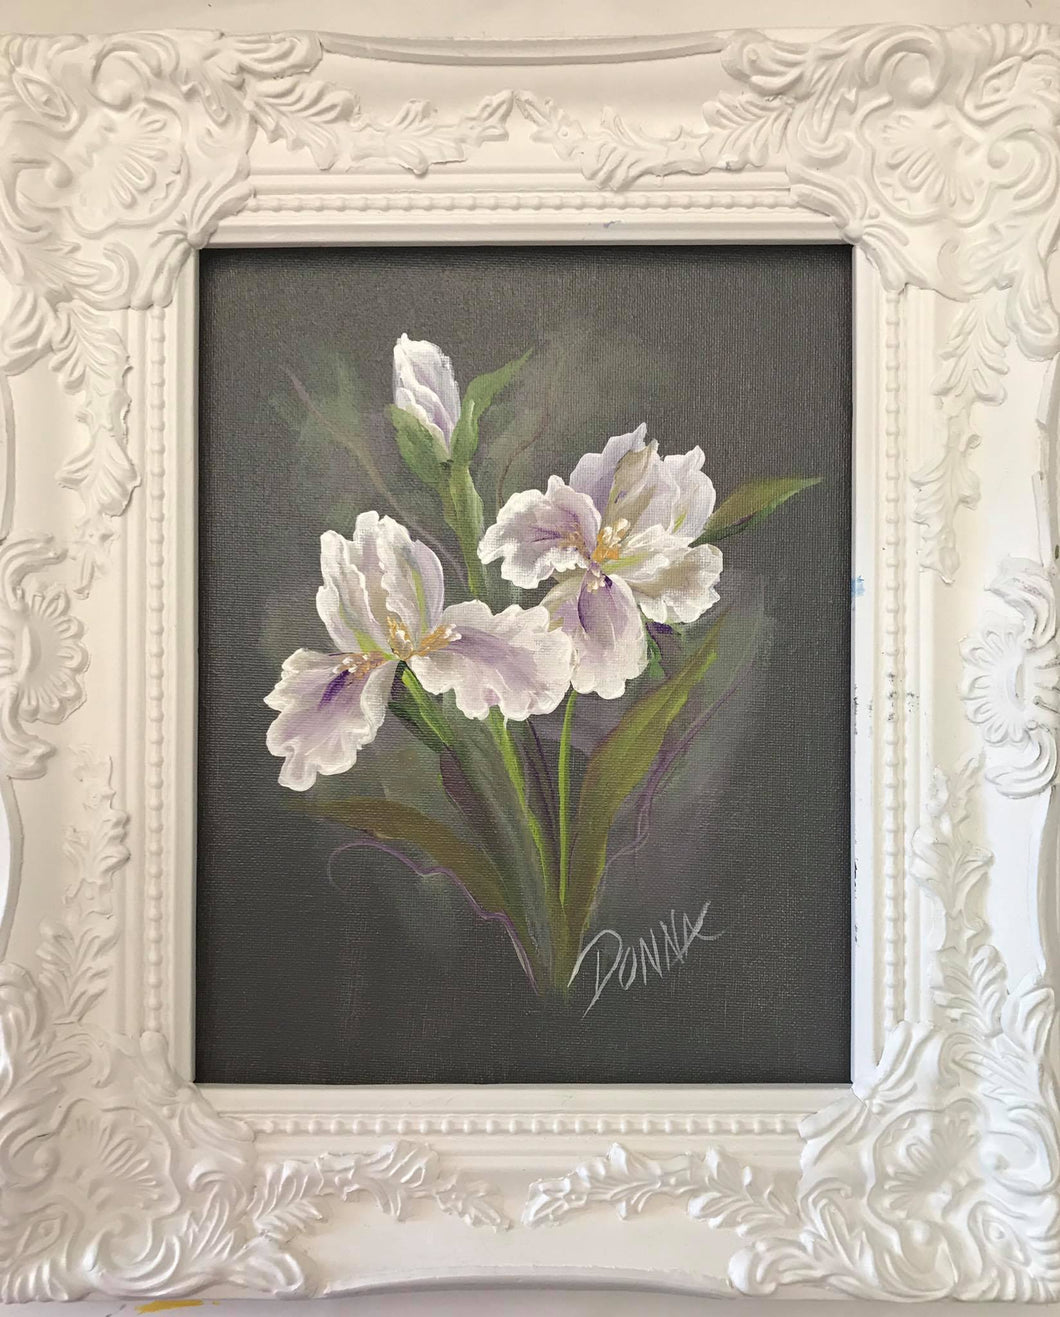 Flowers in White Series - Irises Downloadable Video Lesson